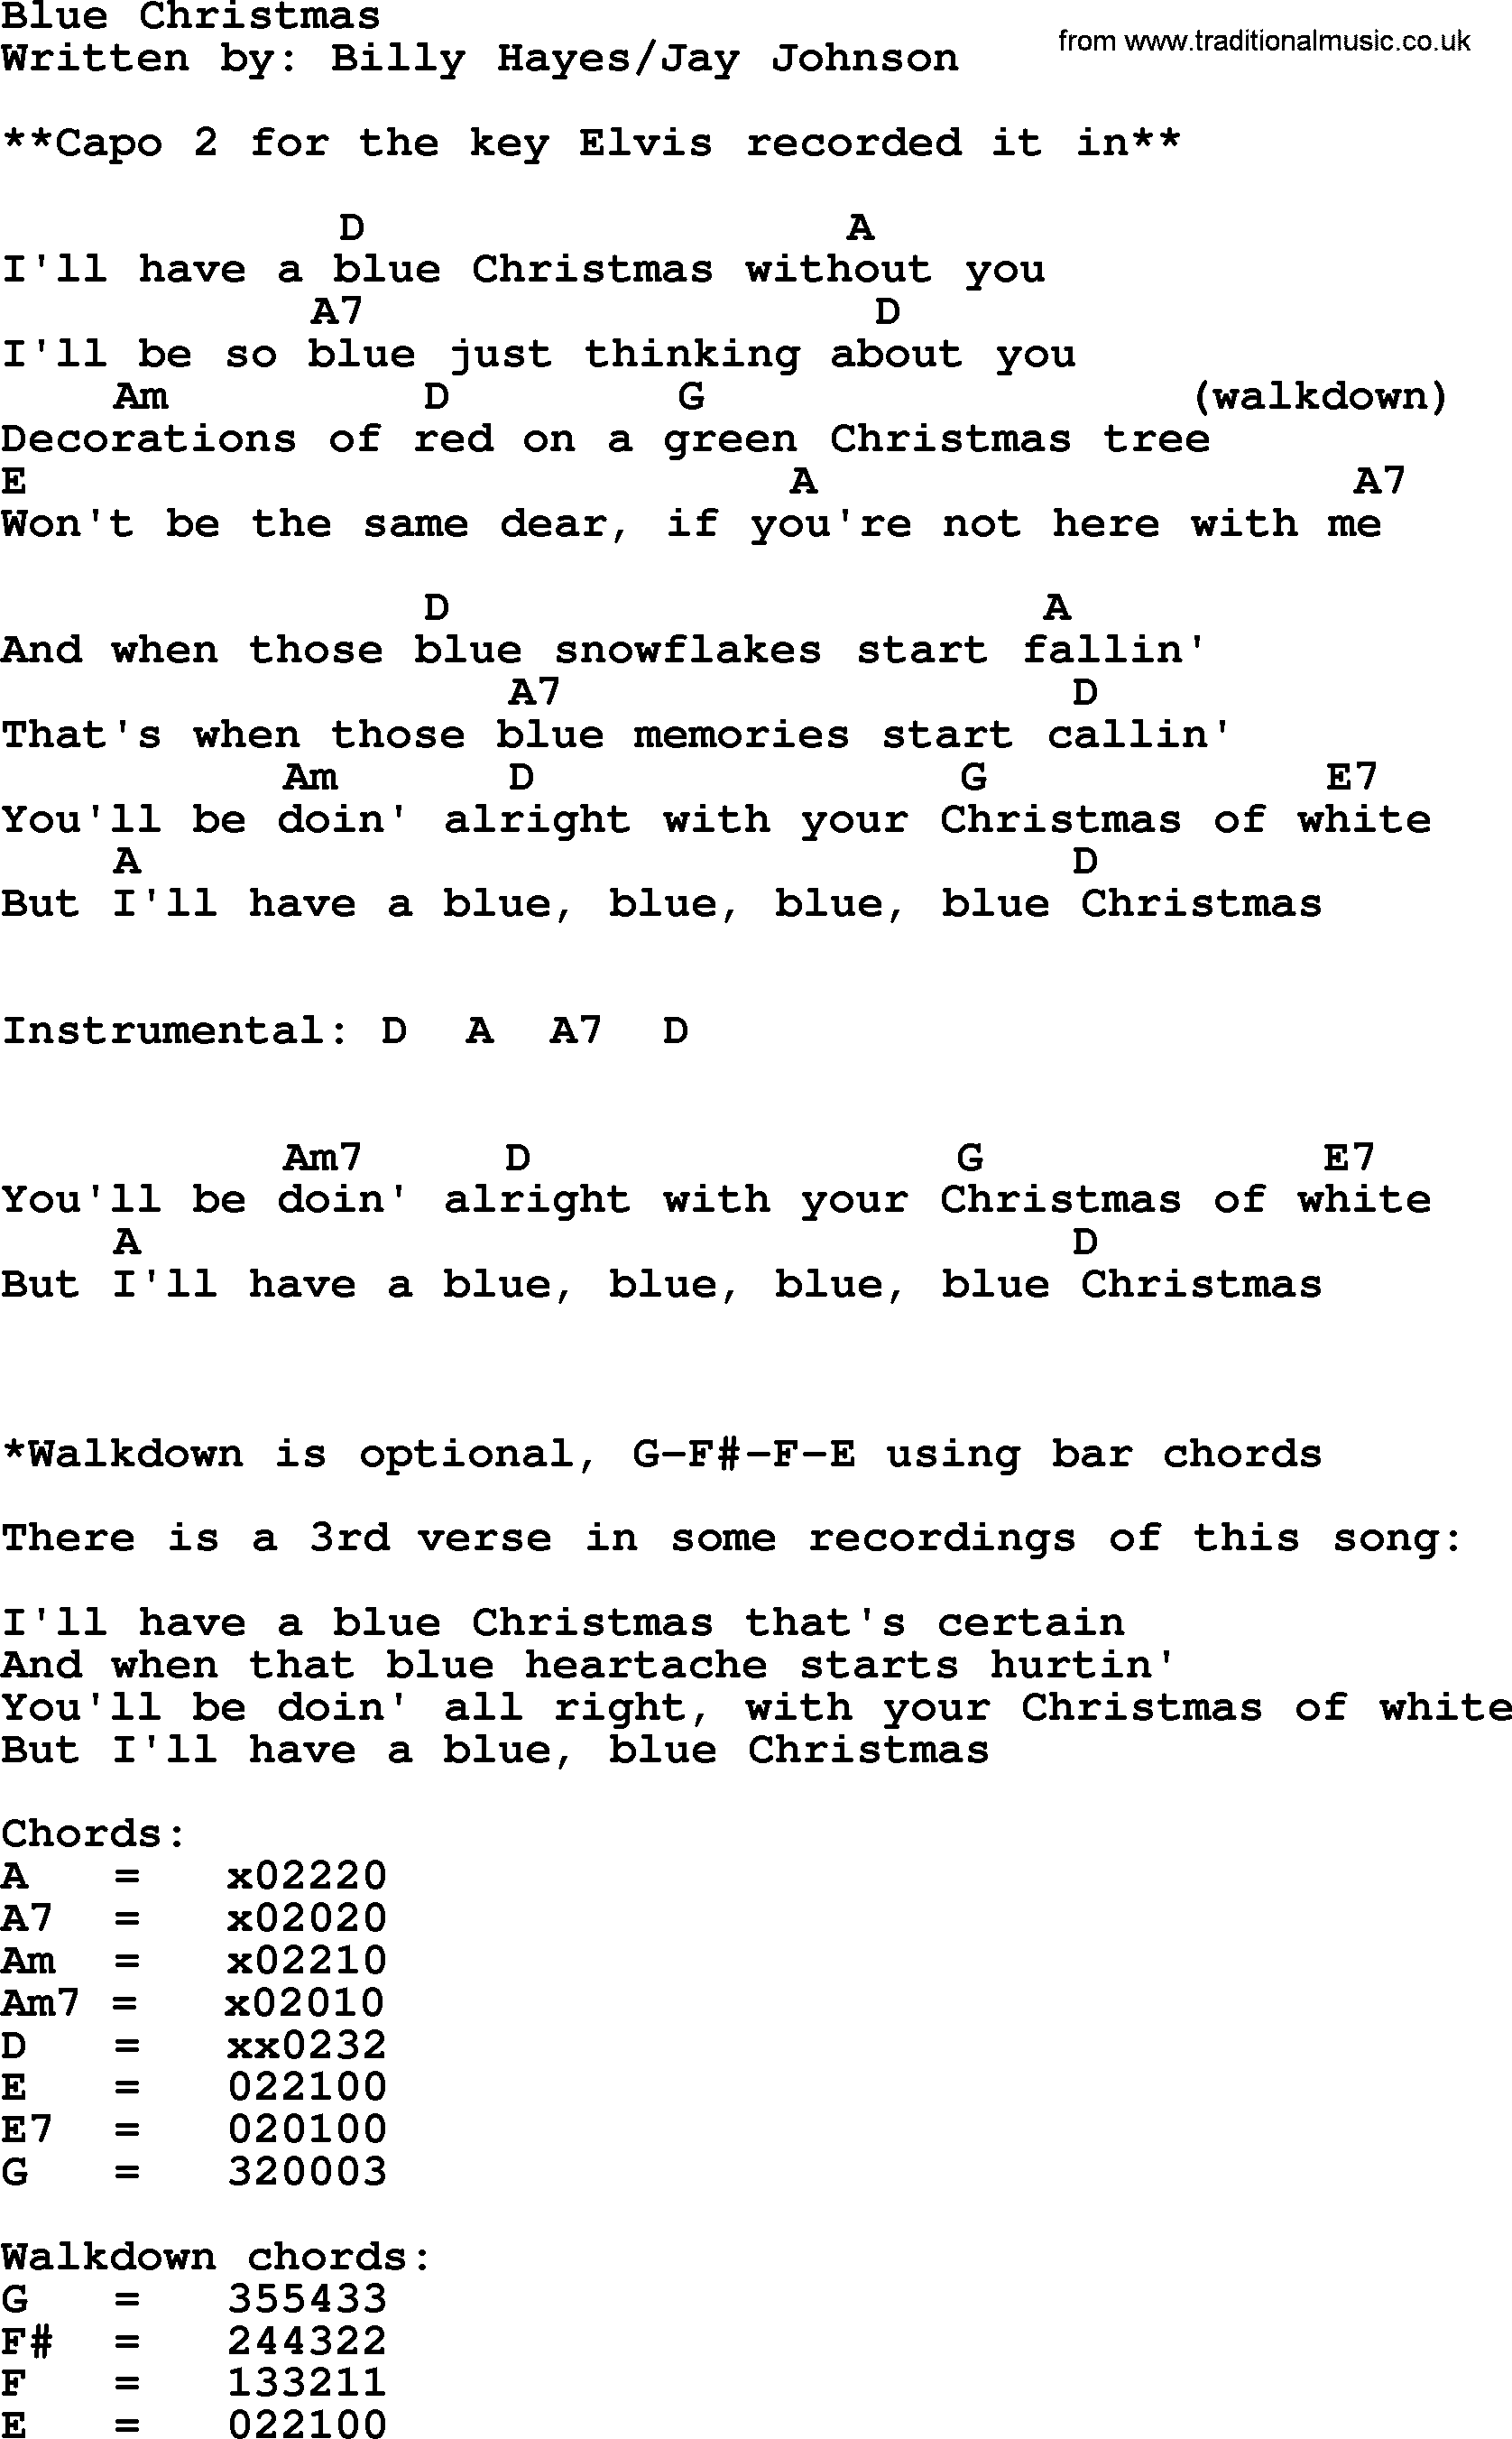 Ill Be Home For Christmas Chords.Blue Christmas By Elvis Presley Lyrics And Chords